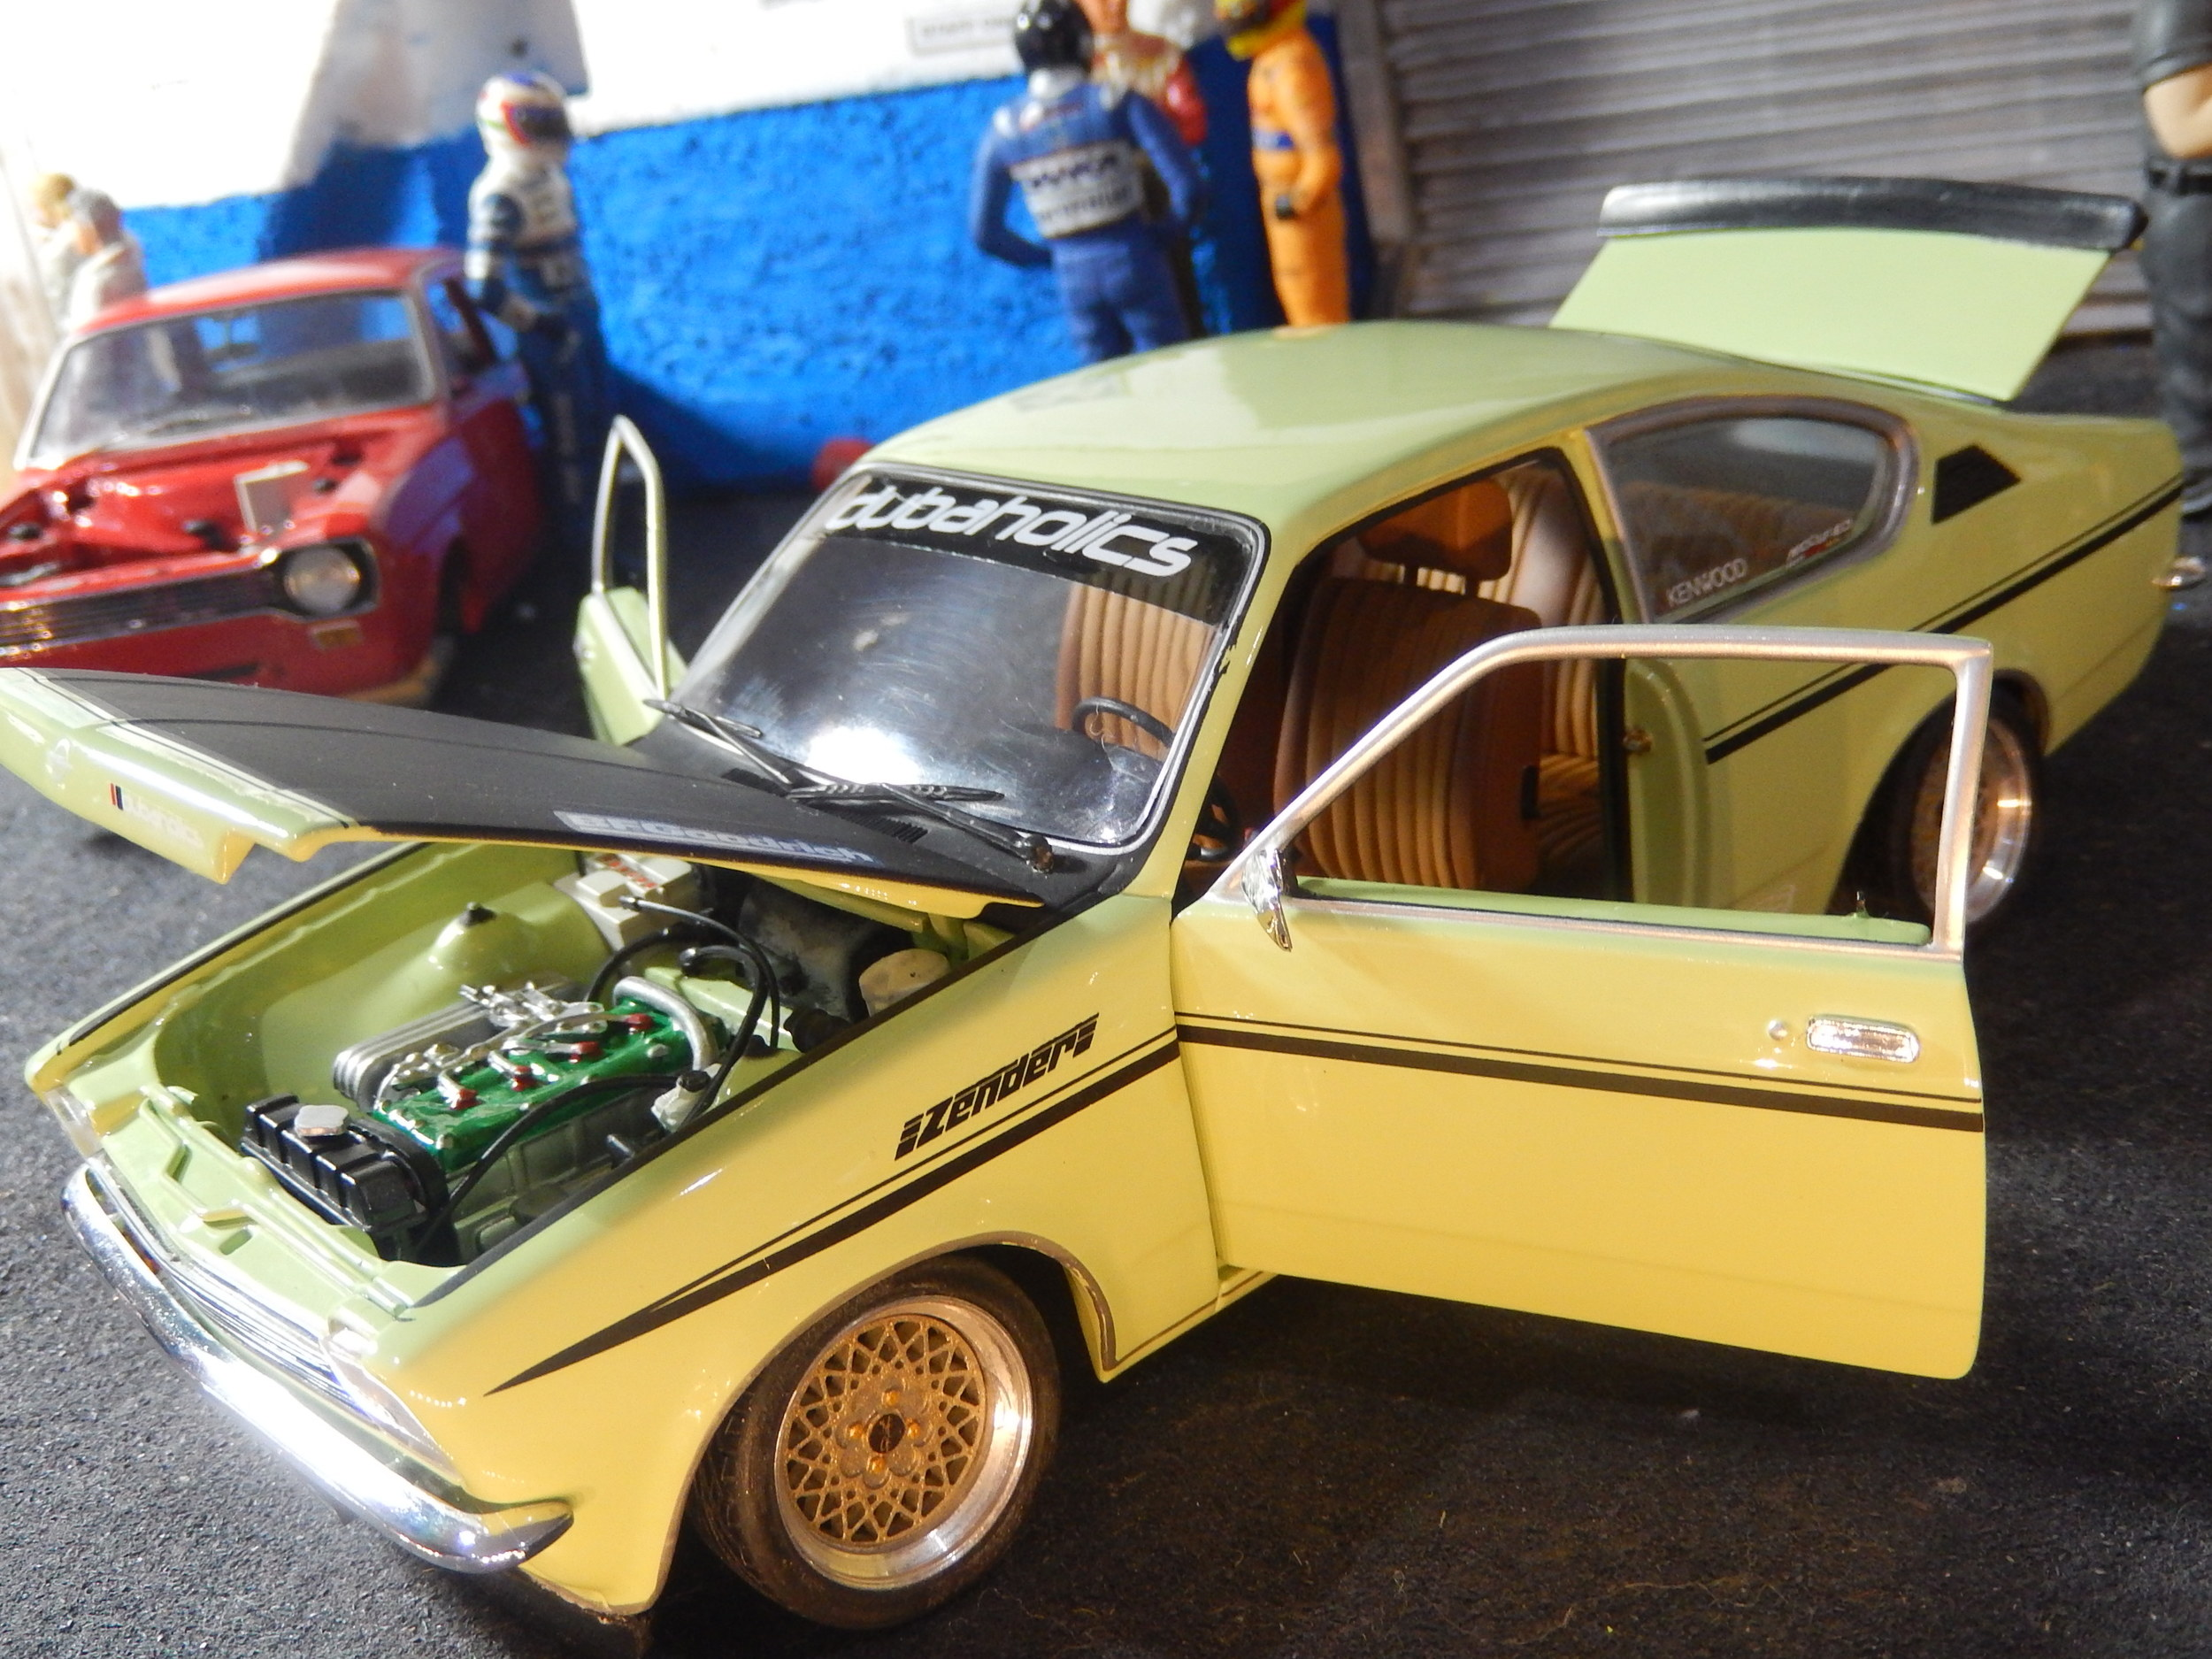 Opel Kadett C Coupe Sr 1800 Bda Modified Tuning 1 18 Scale By Minichamps Cs Diecast Tuning